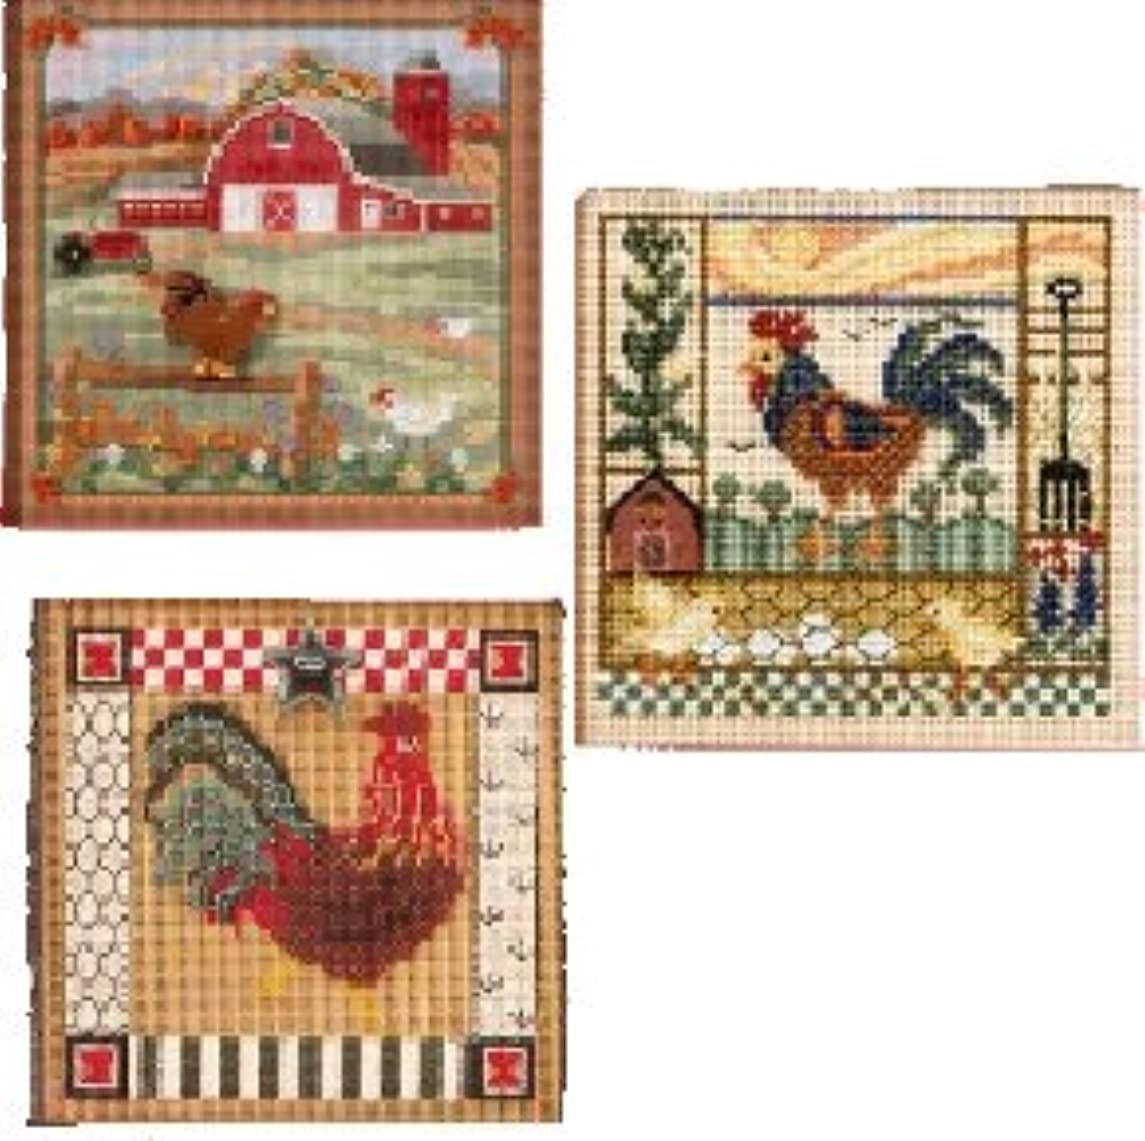 3 Item Bundle-Buttons and Beads Counted Cross Stitch: Country Morning, Barnyard Morning & Folk Art Rooster